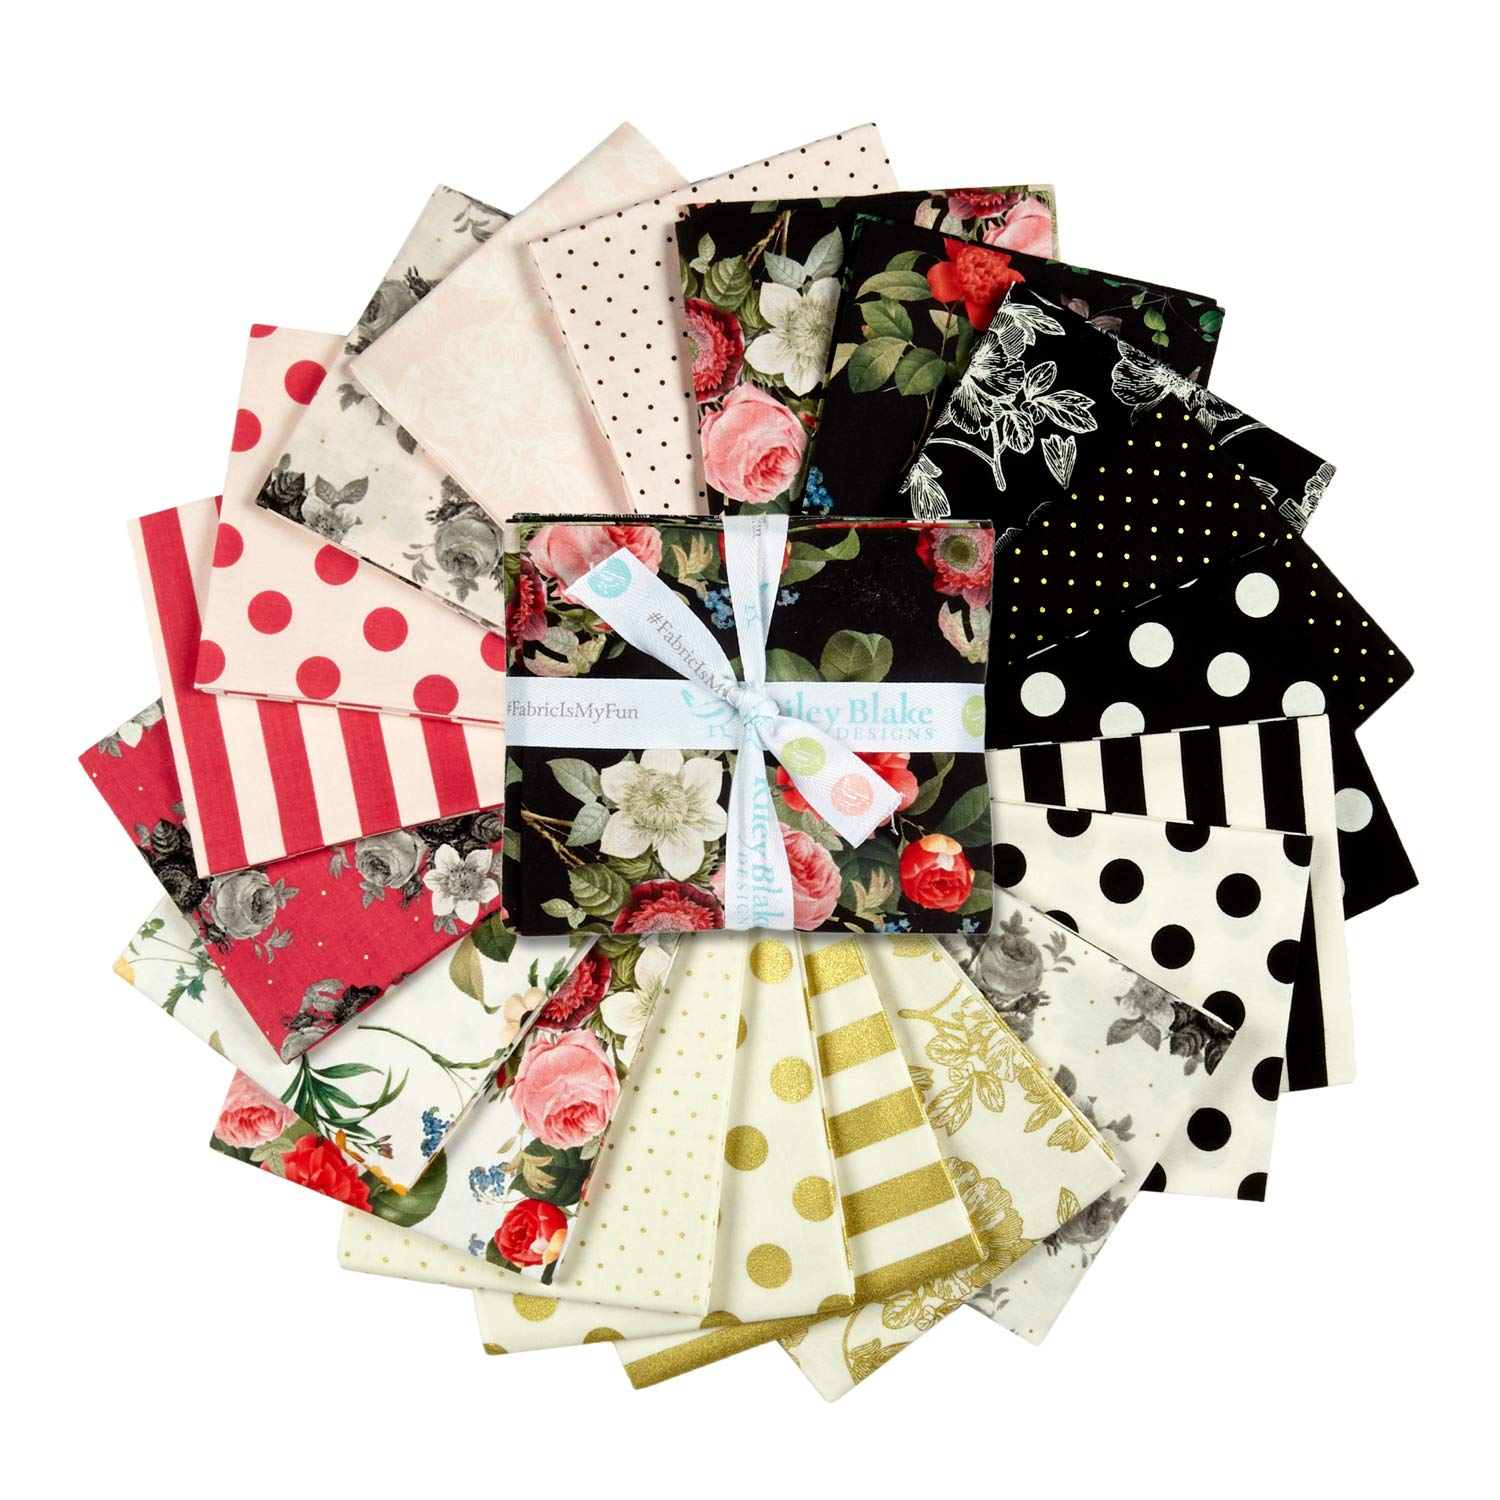 Riley Blake Designs In Bloom Fat Quarter Bundle Multi by Riley Blake Designs (Image #1)